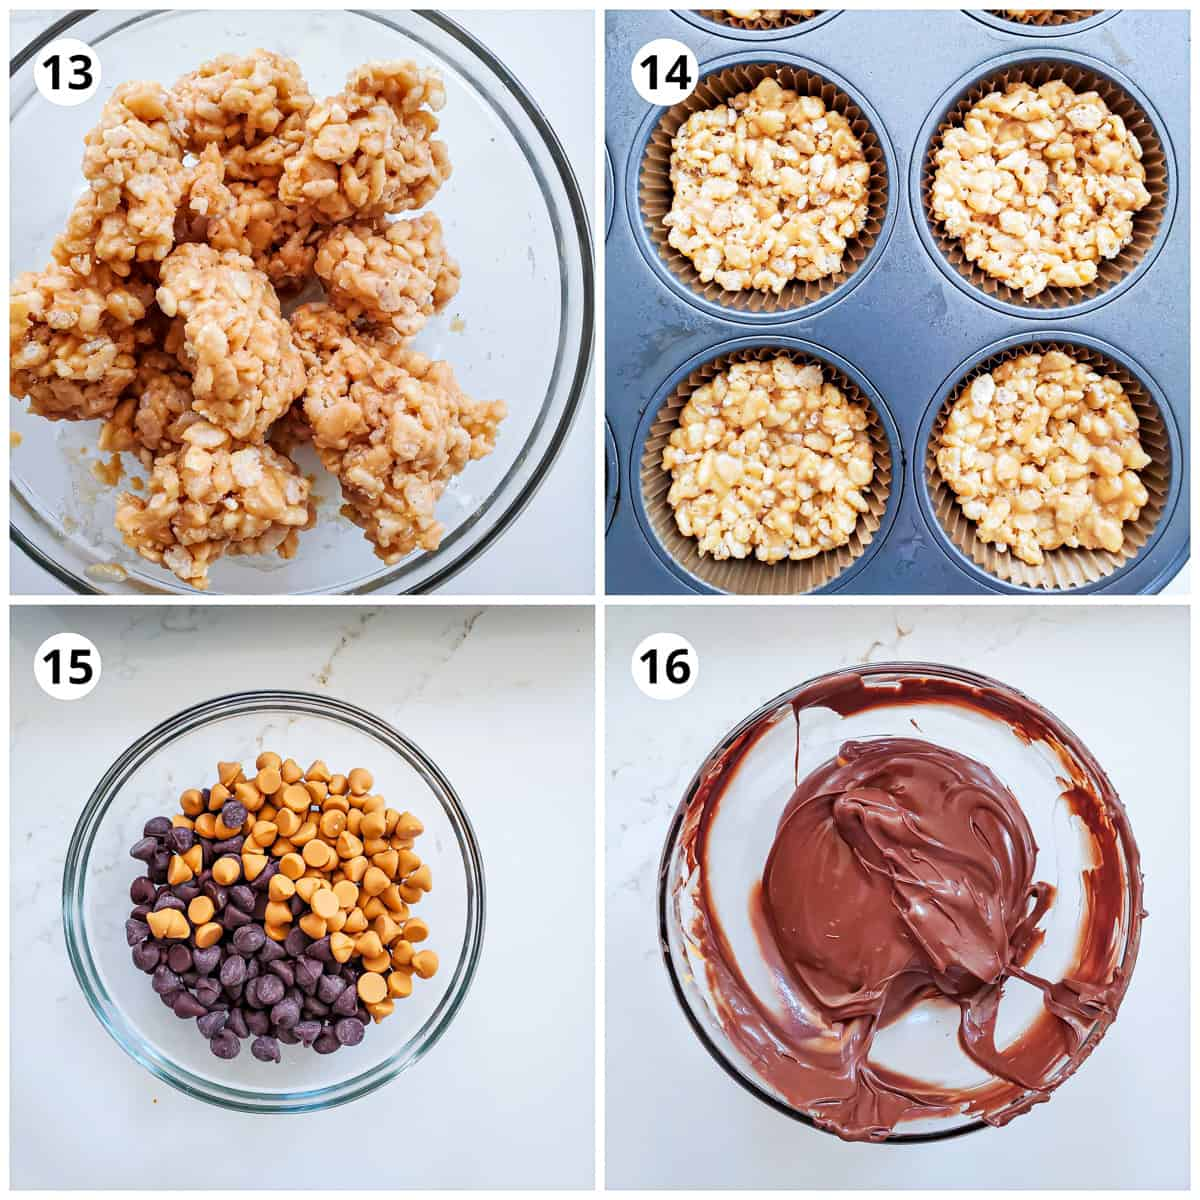 pressing rice krispies mix on top of the brownies in muffin pan and melting chocolate.